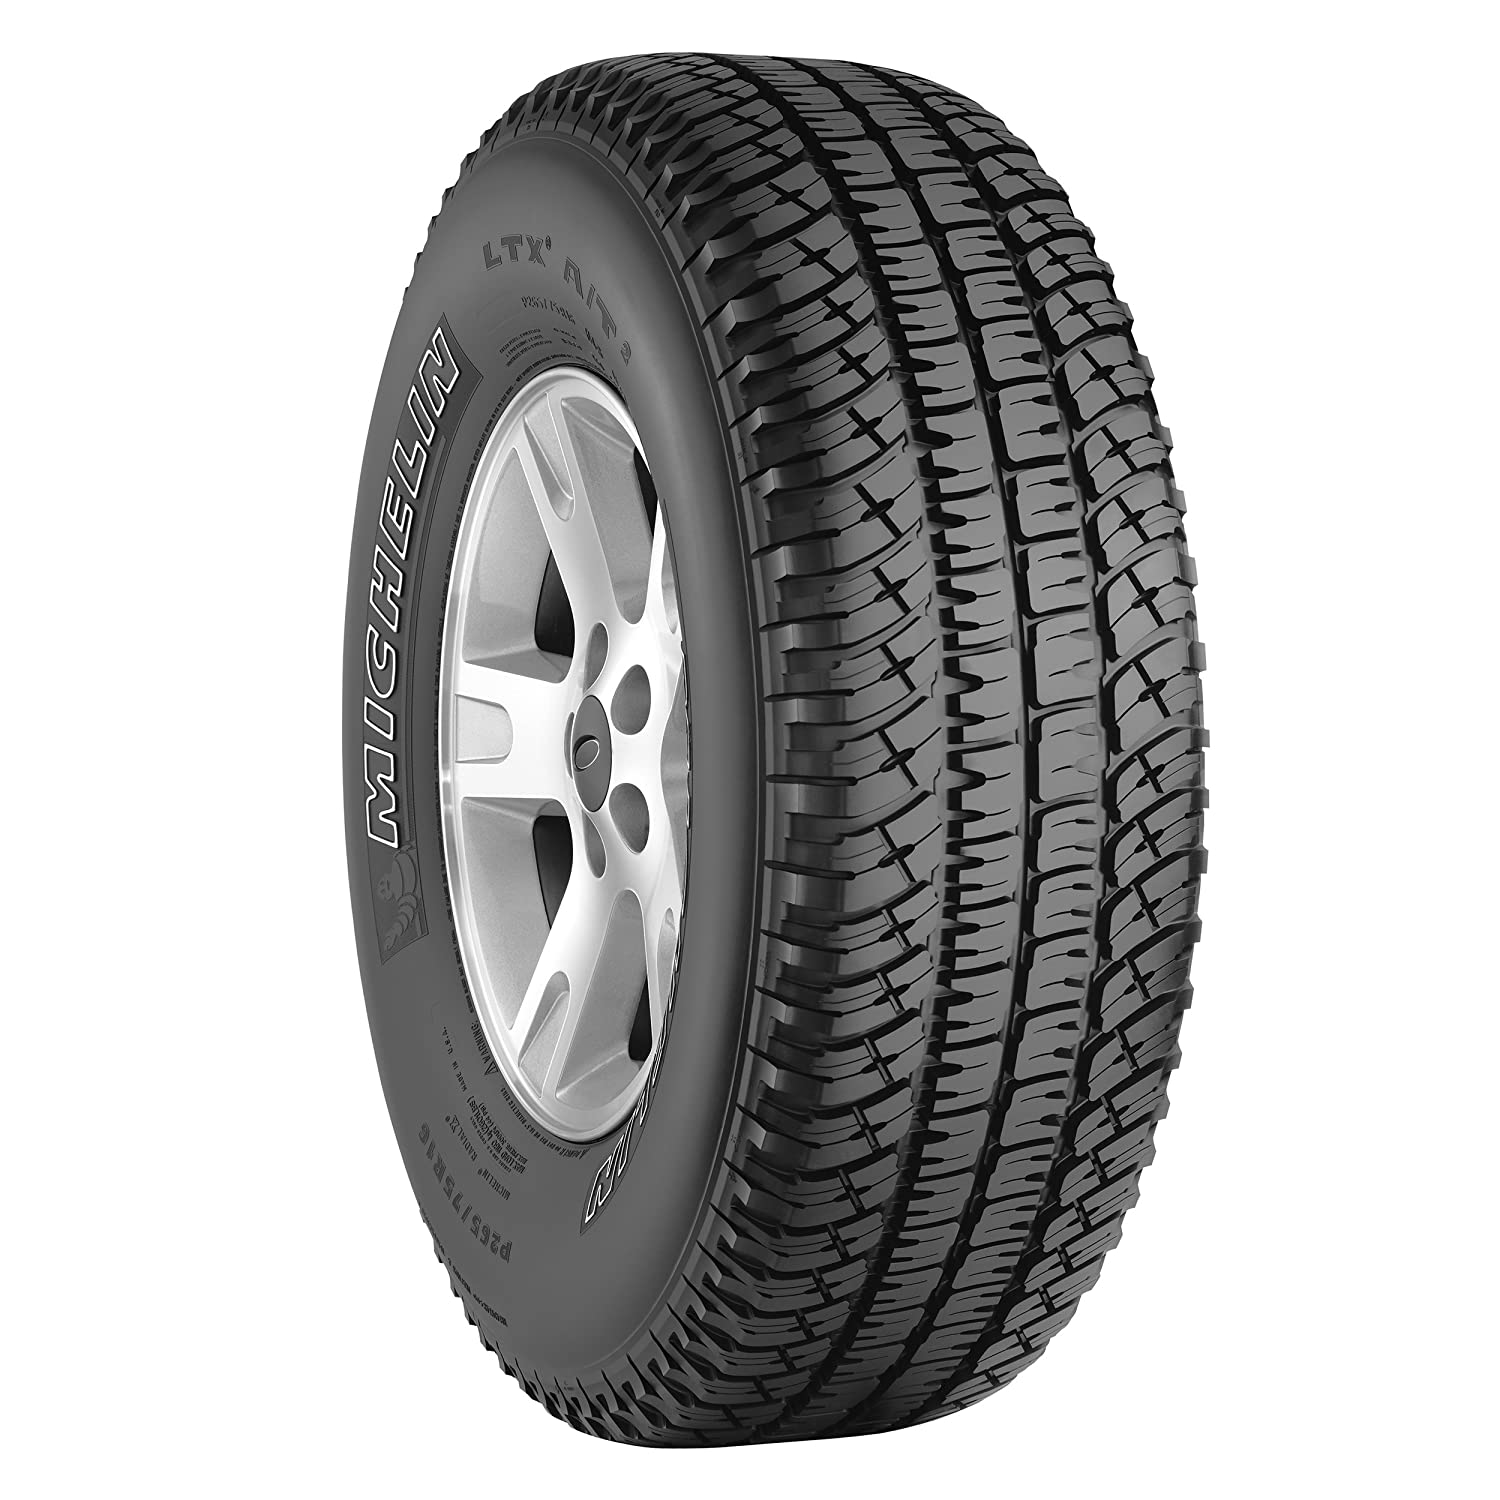 Did you know that you can now buy Goodyear tires online for your vehicle? See how easy it is and buy your new tires online today at tenpuloads.gq